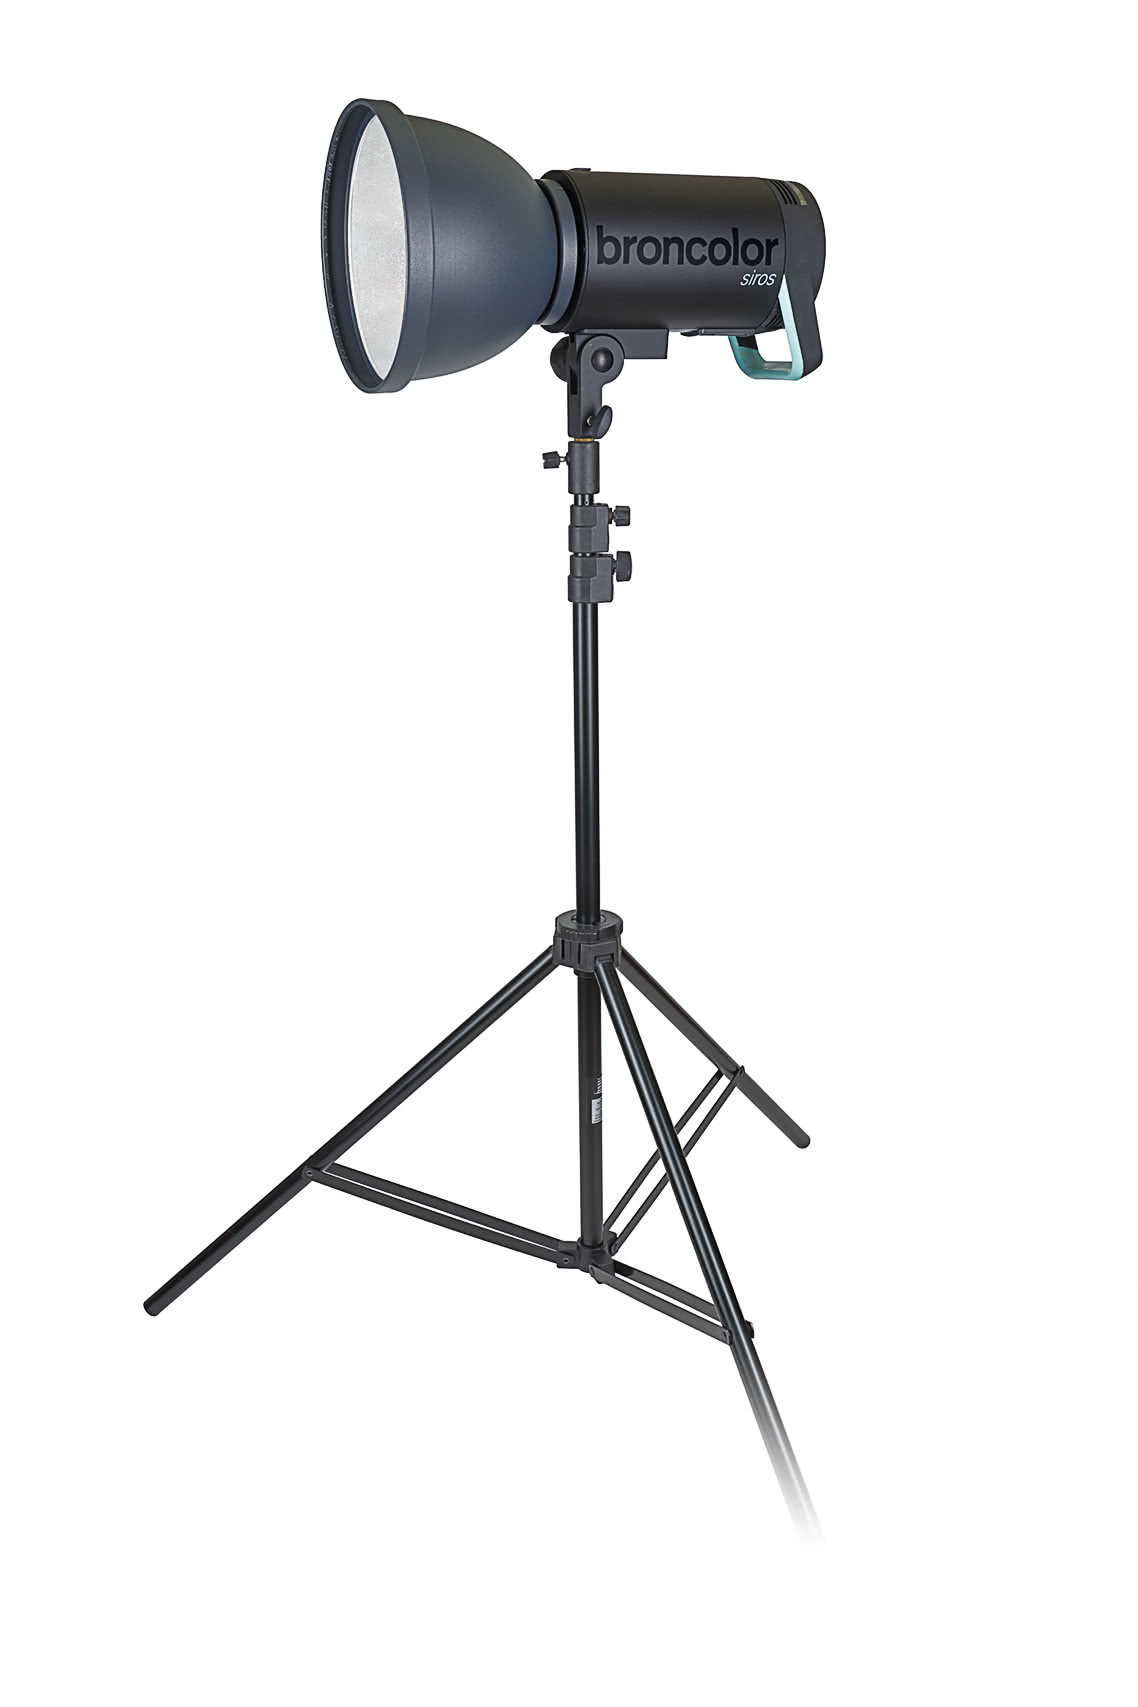 broncolor-siros-800s-flash-vertical